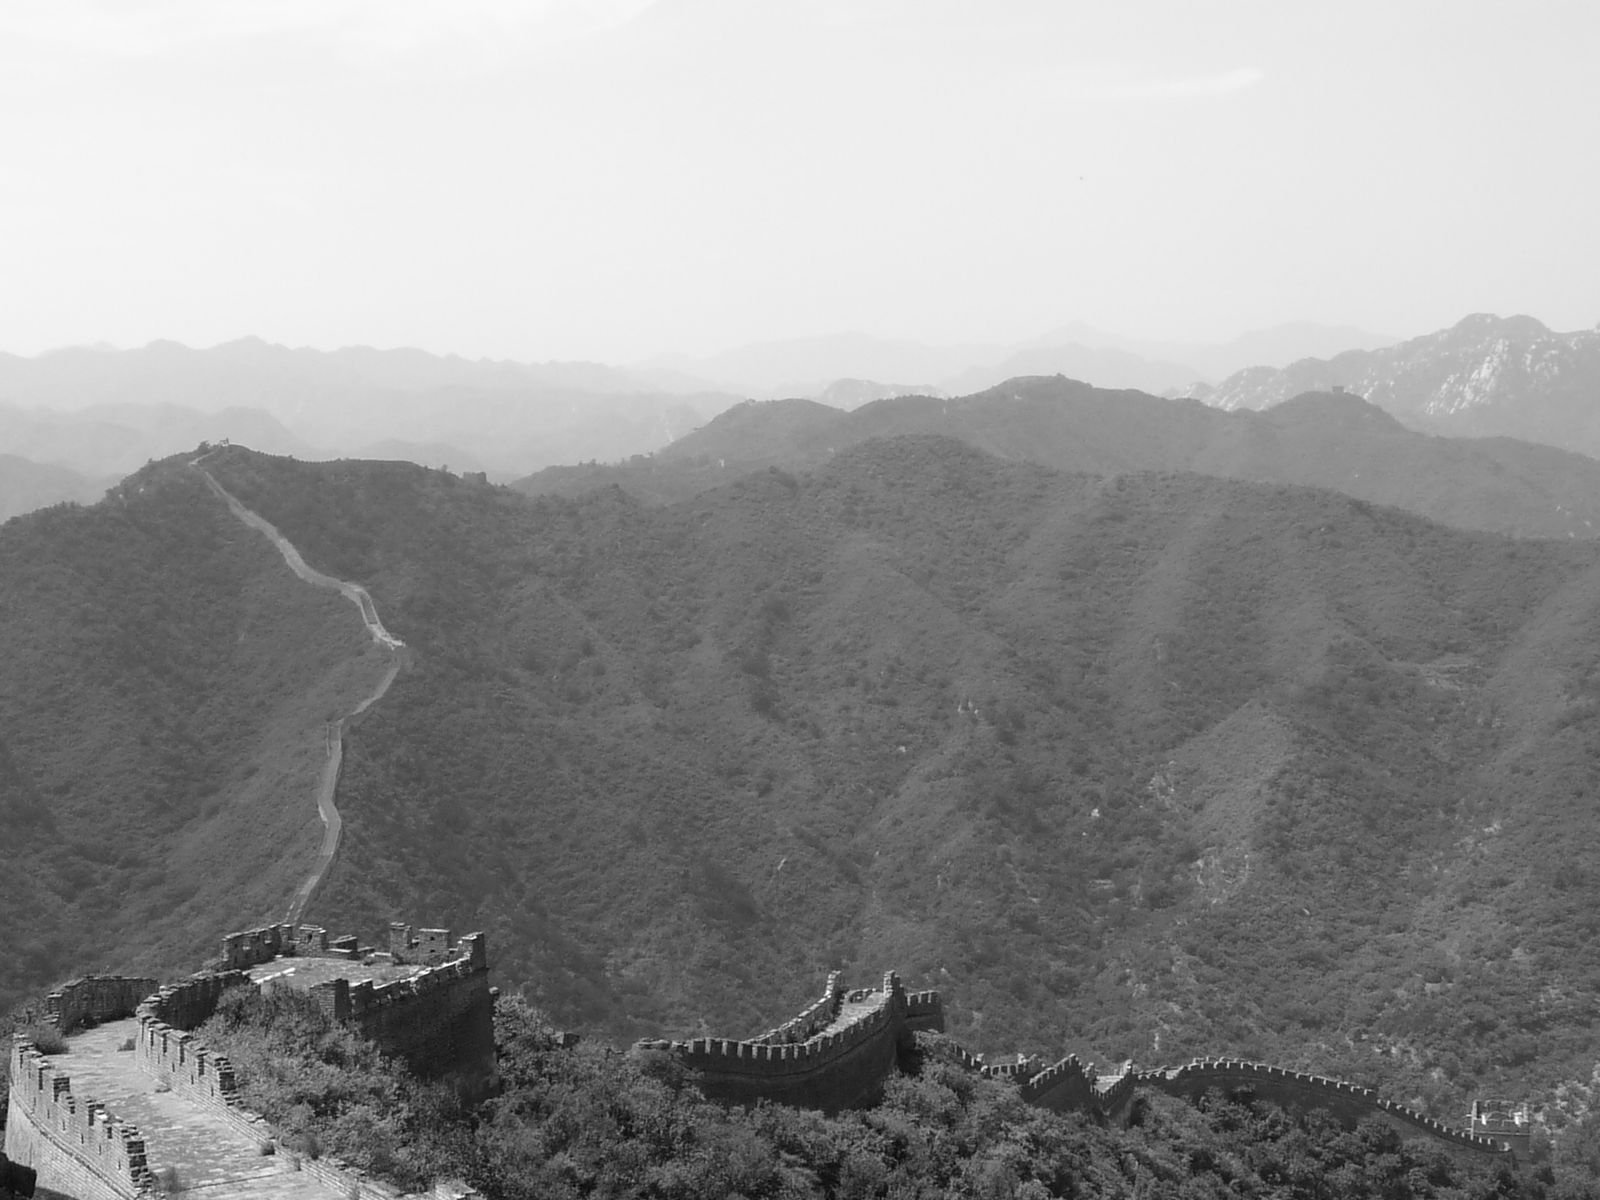 A big bout du great wall